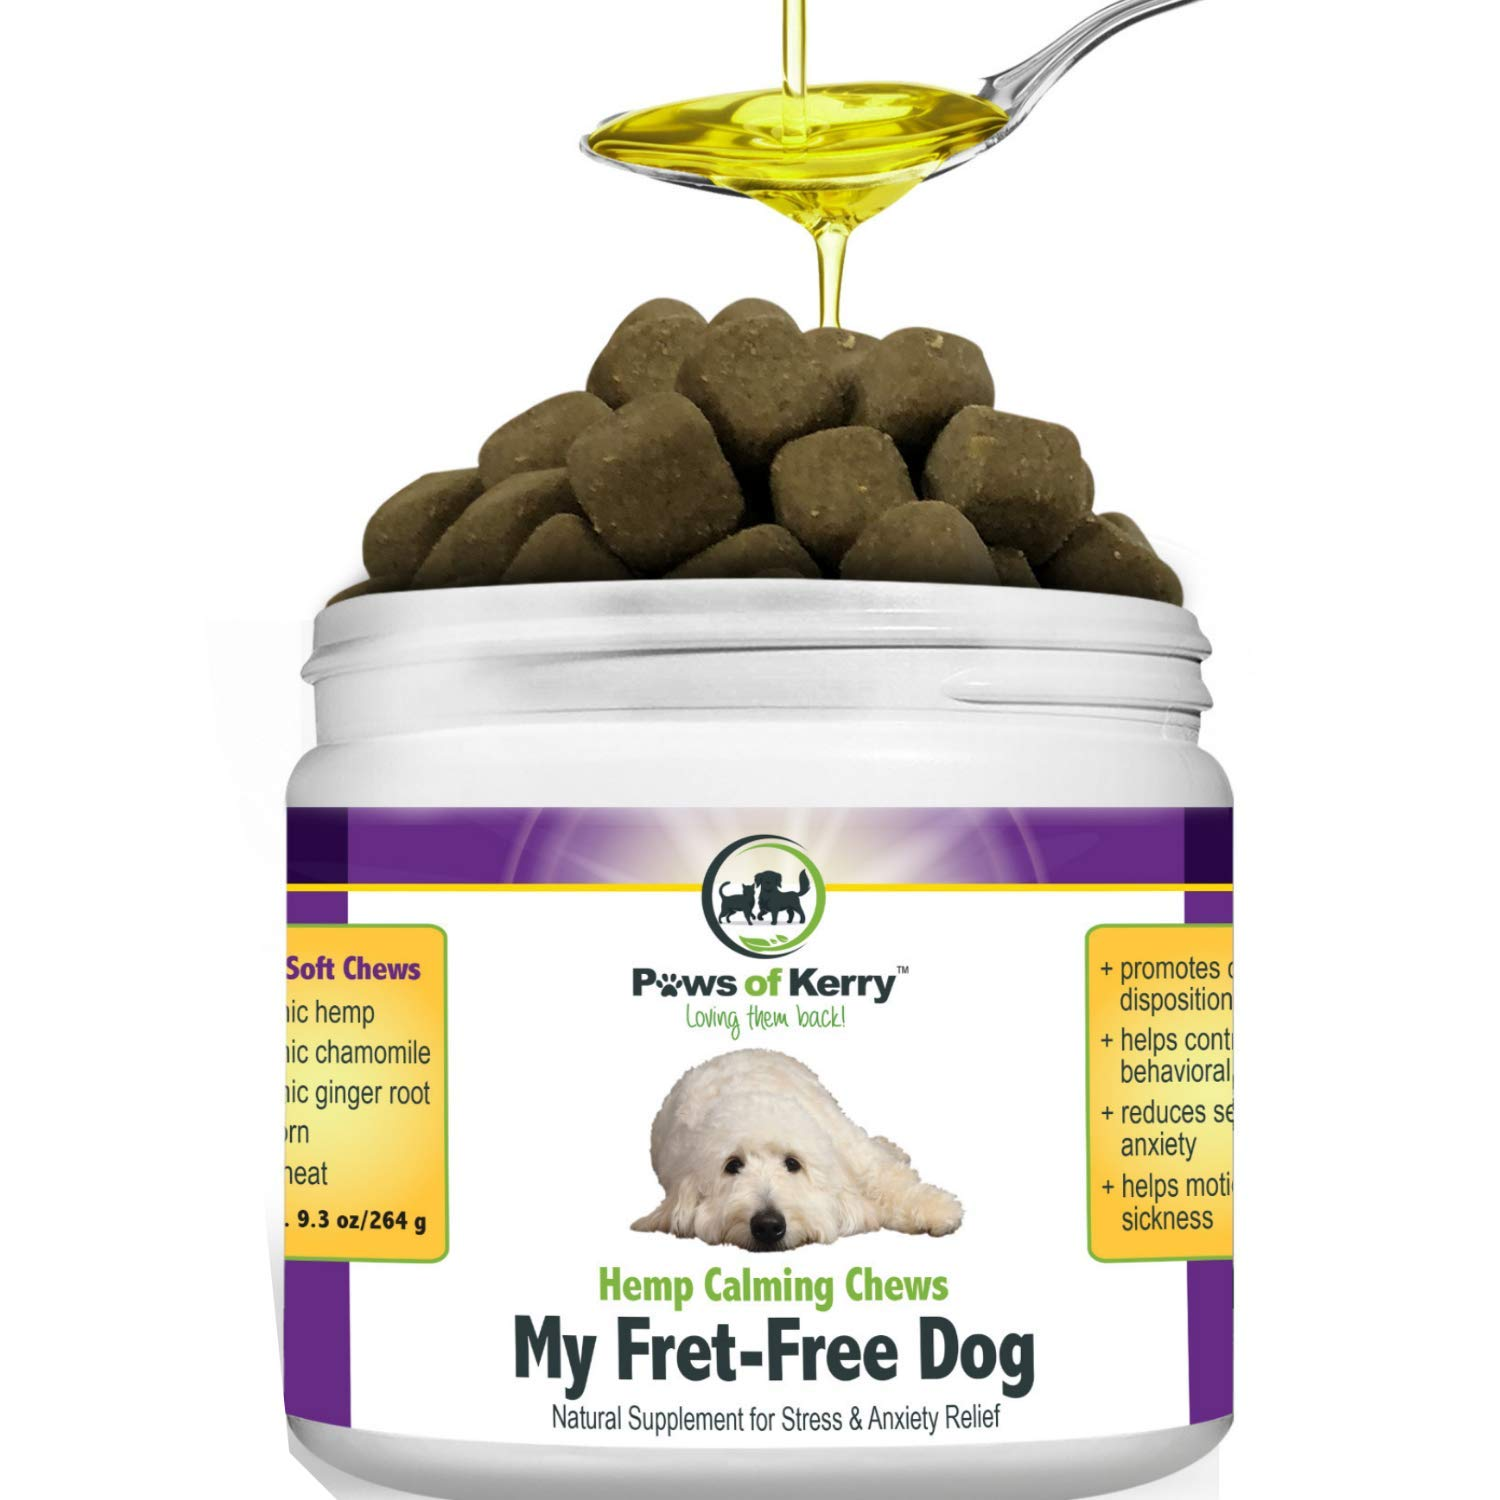 Paws of Kerry Calming Treats for Dogs Anxiety, Natural Hemp Oil for Dog Anxiety Relief, Dog Calming Aid for Separation Anxiety, Stress, Storms, Fireworks, Chewing & Barking 120 Soft Chews by Paws of Kerry